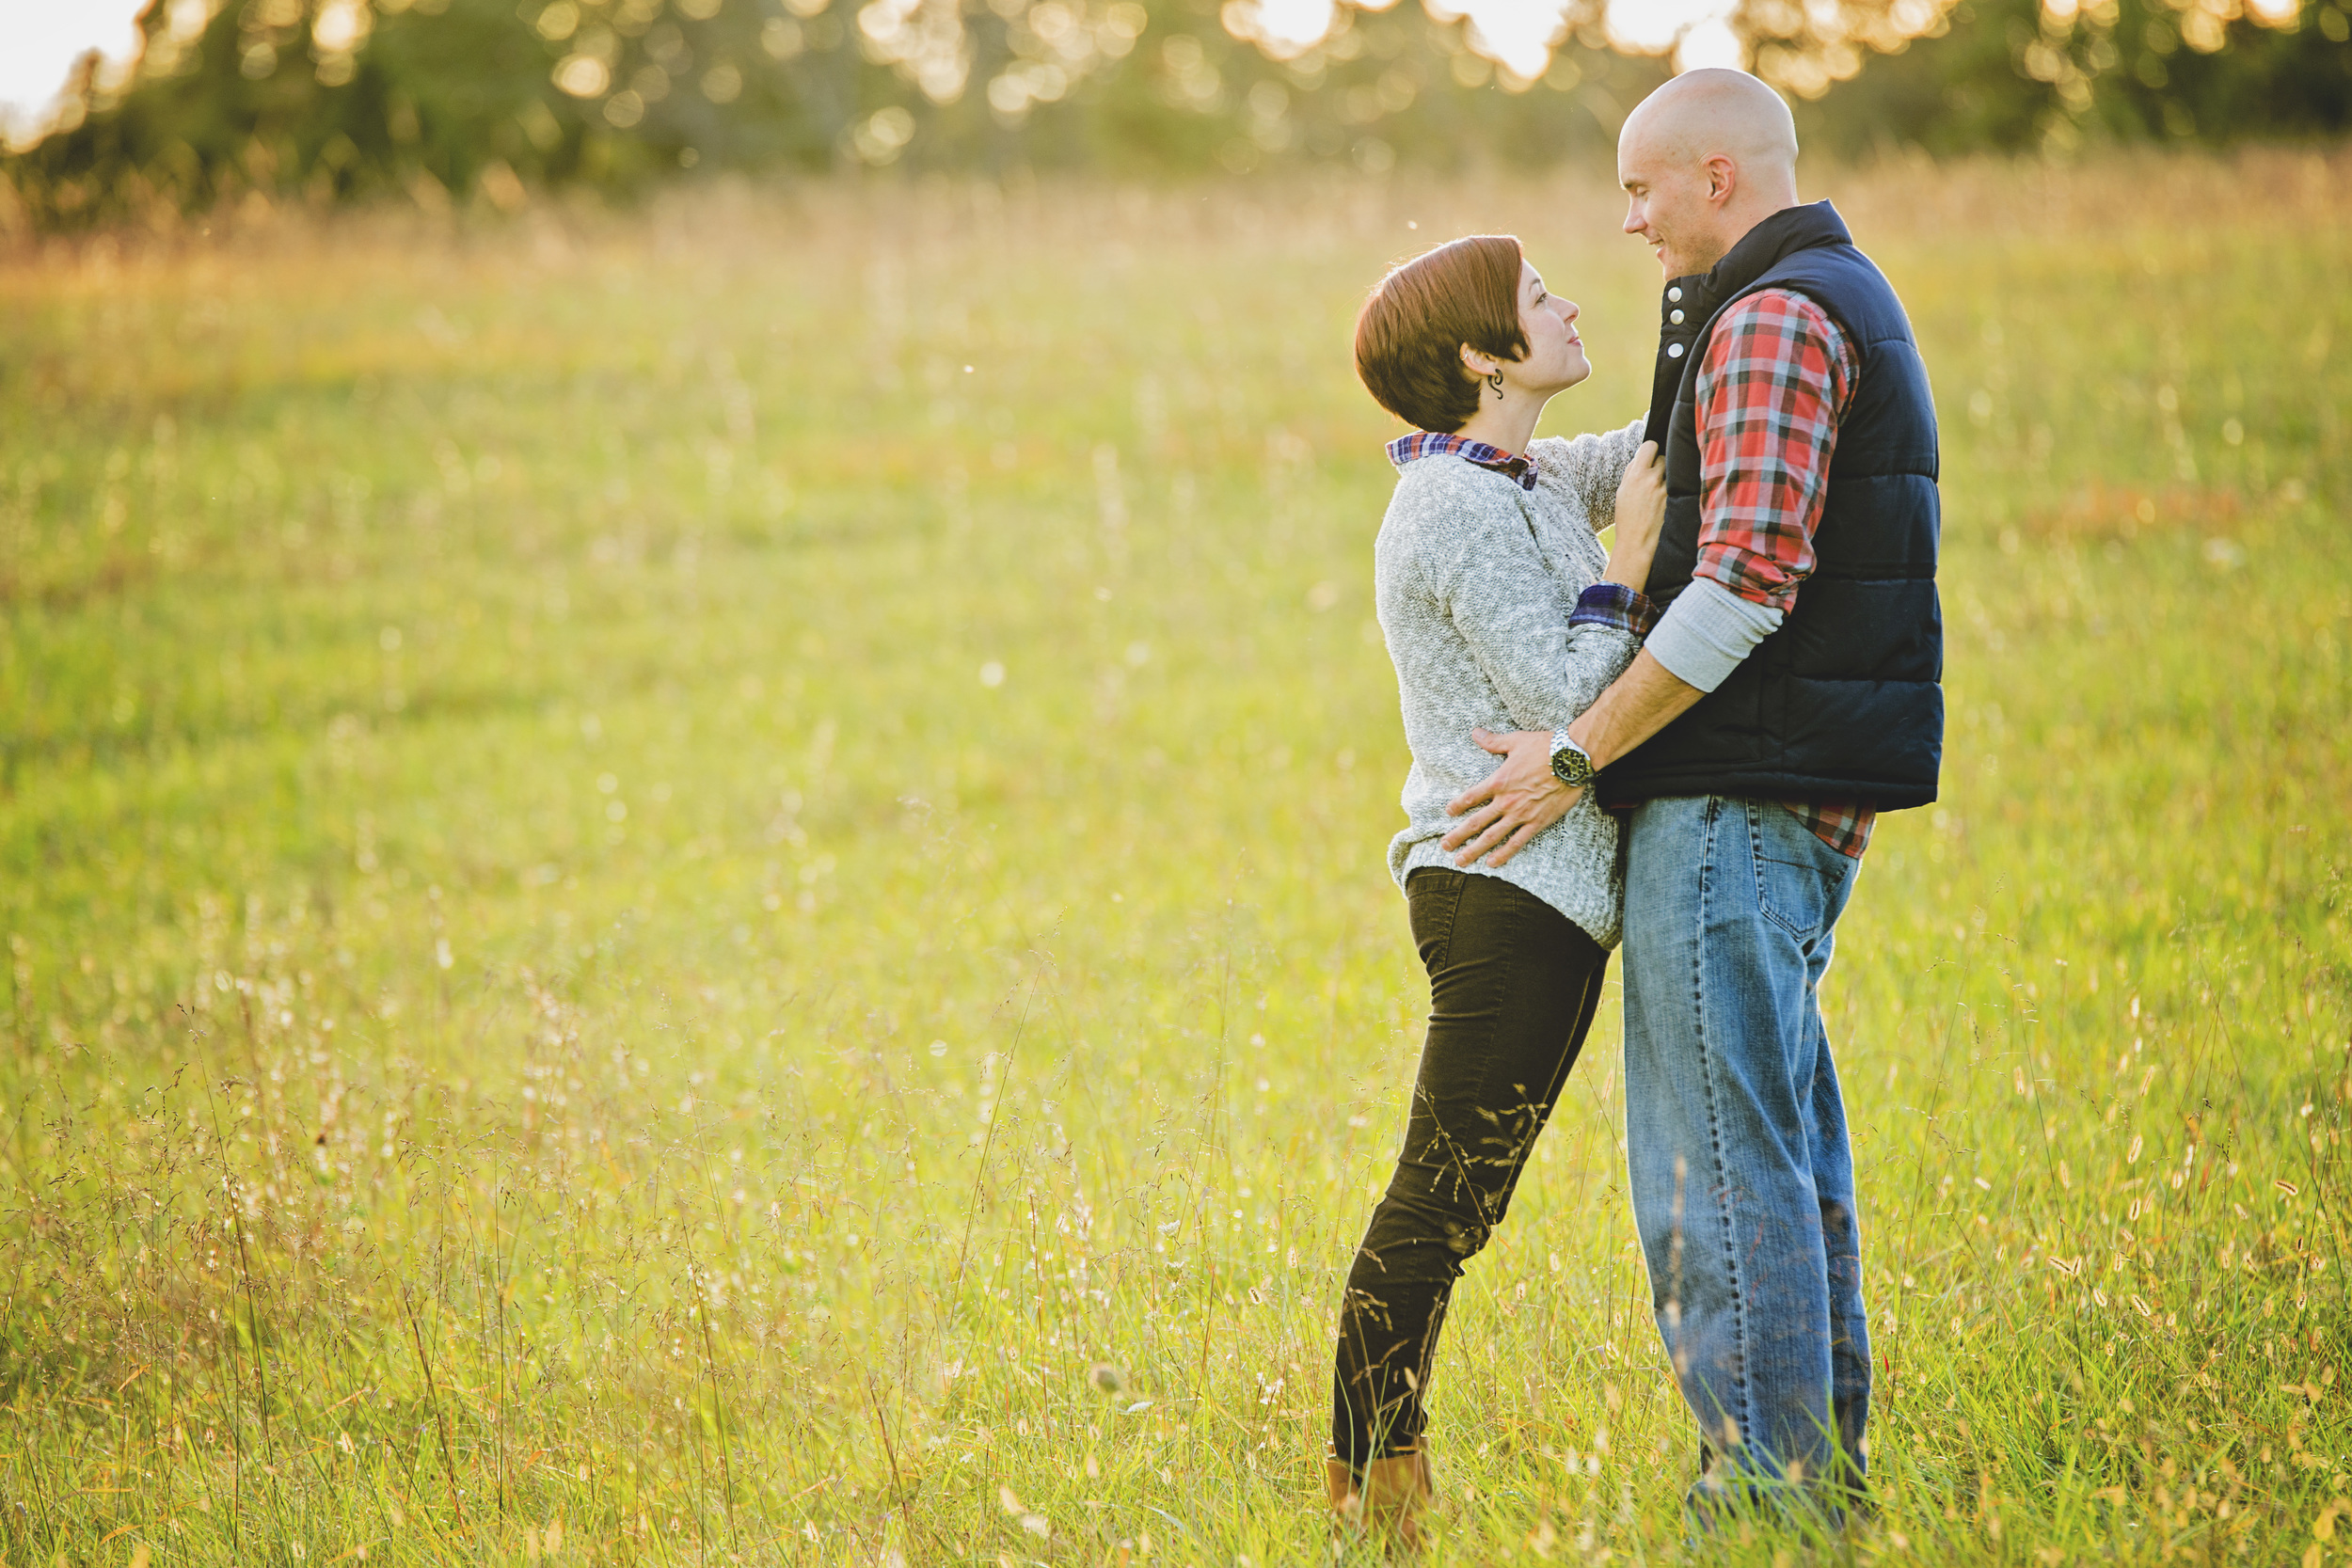 romantic_fall_field_engagement_session_lynchburg_va003.jpg